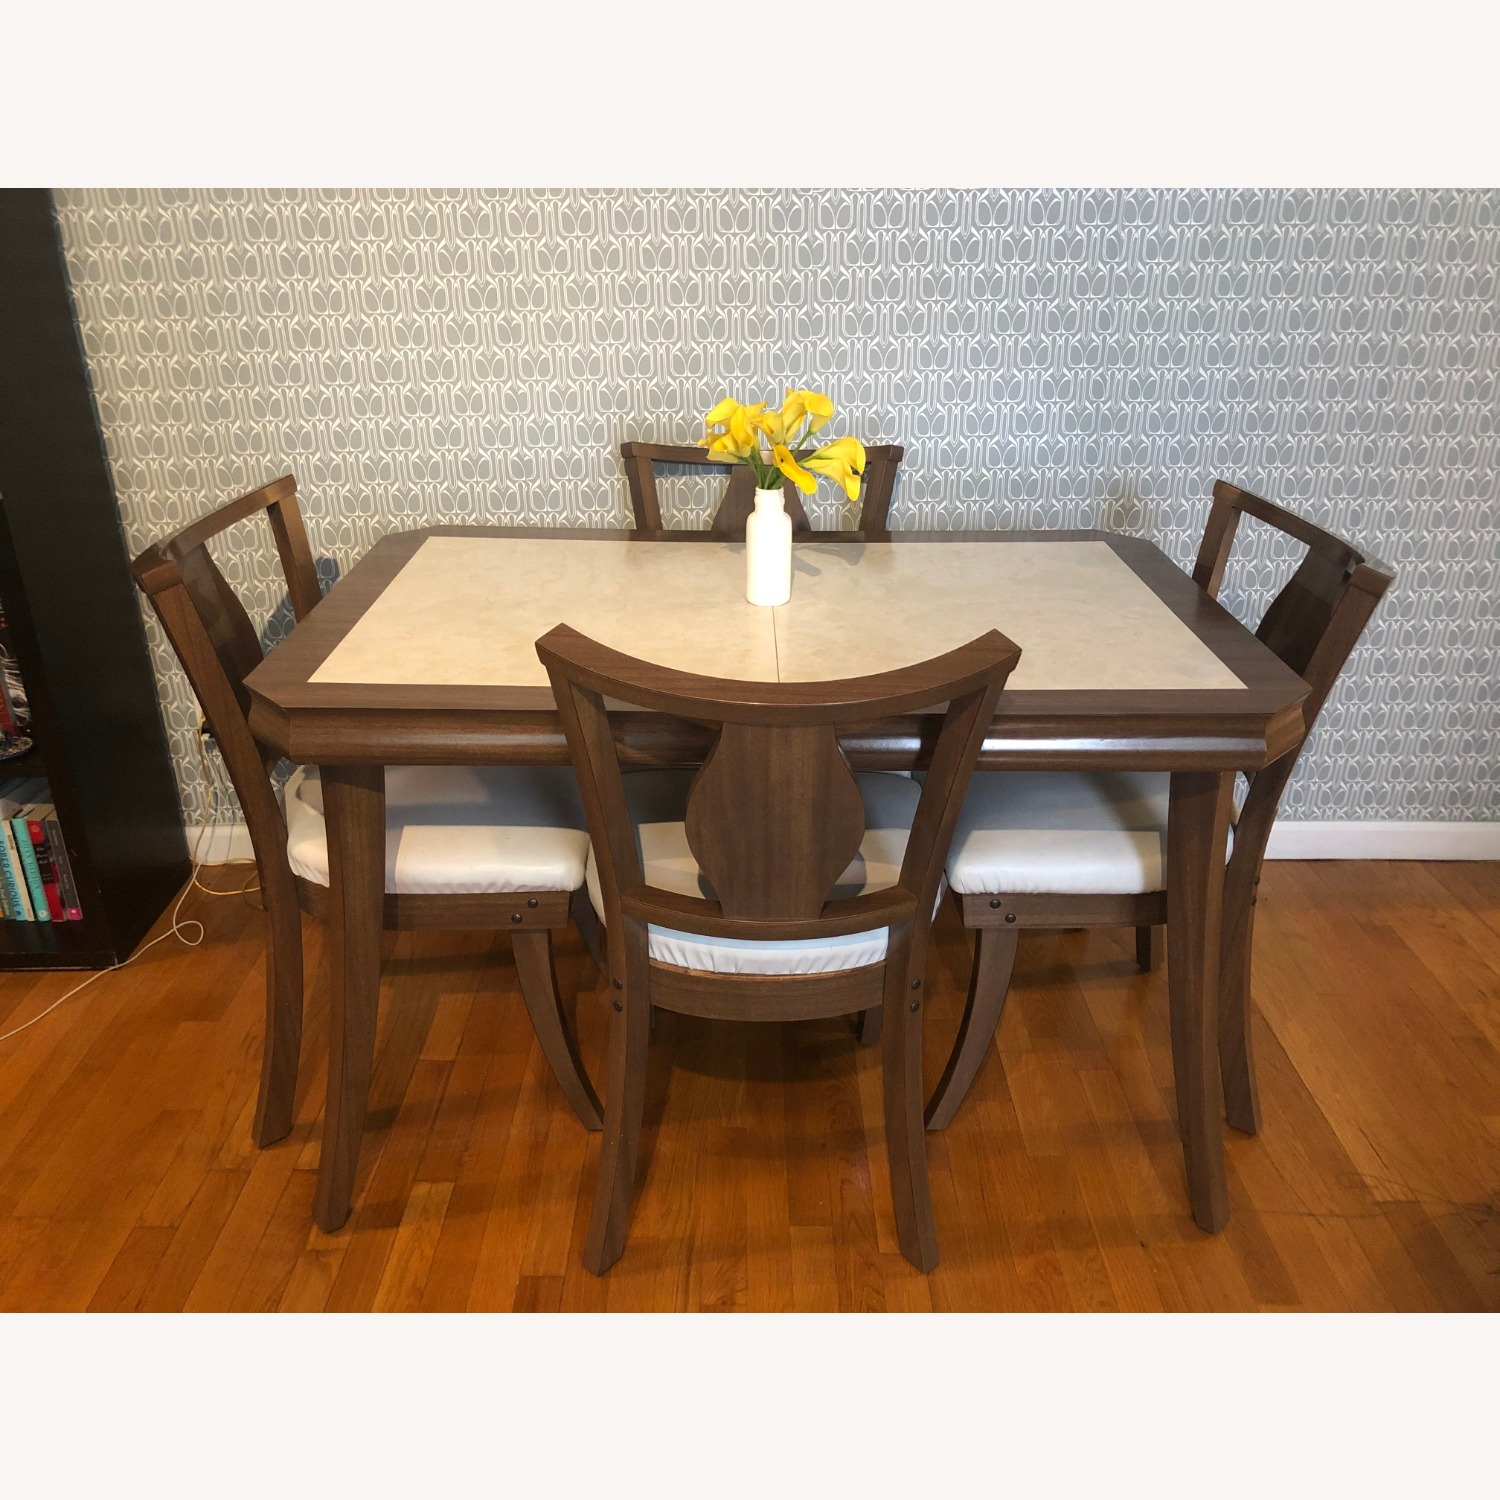 Mid Century Modern Dining Table - image-1